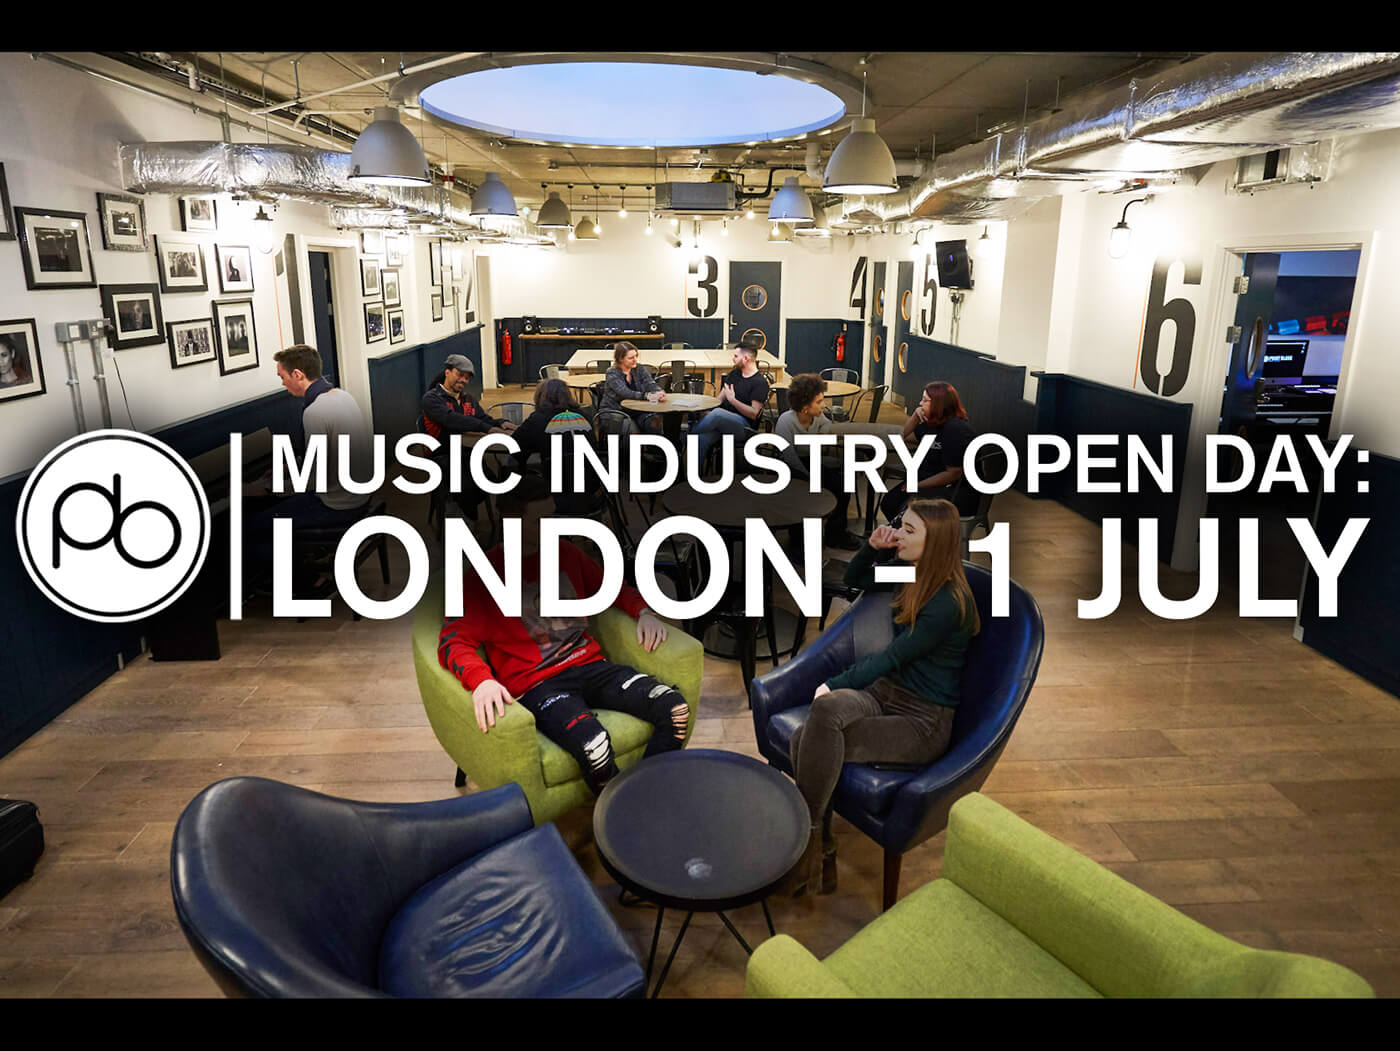 Point Blank to helm industry panel discussion at upcoming open day